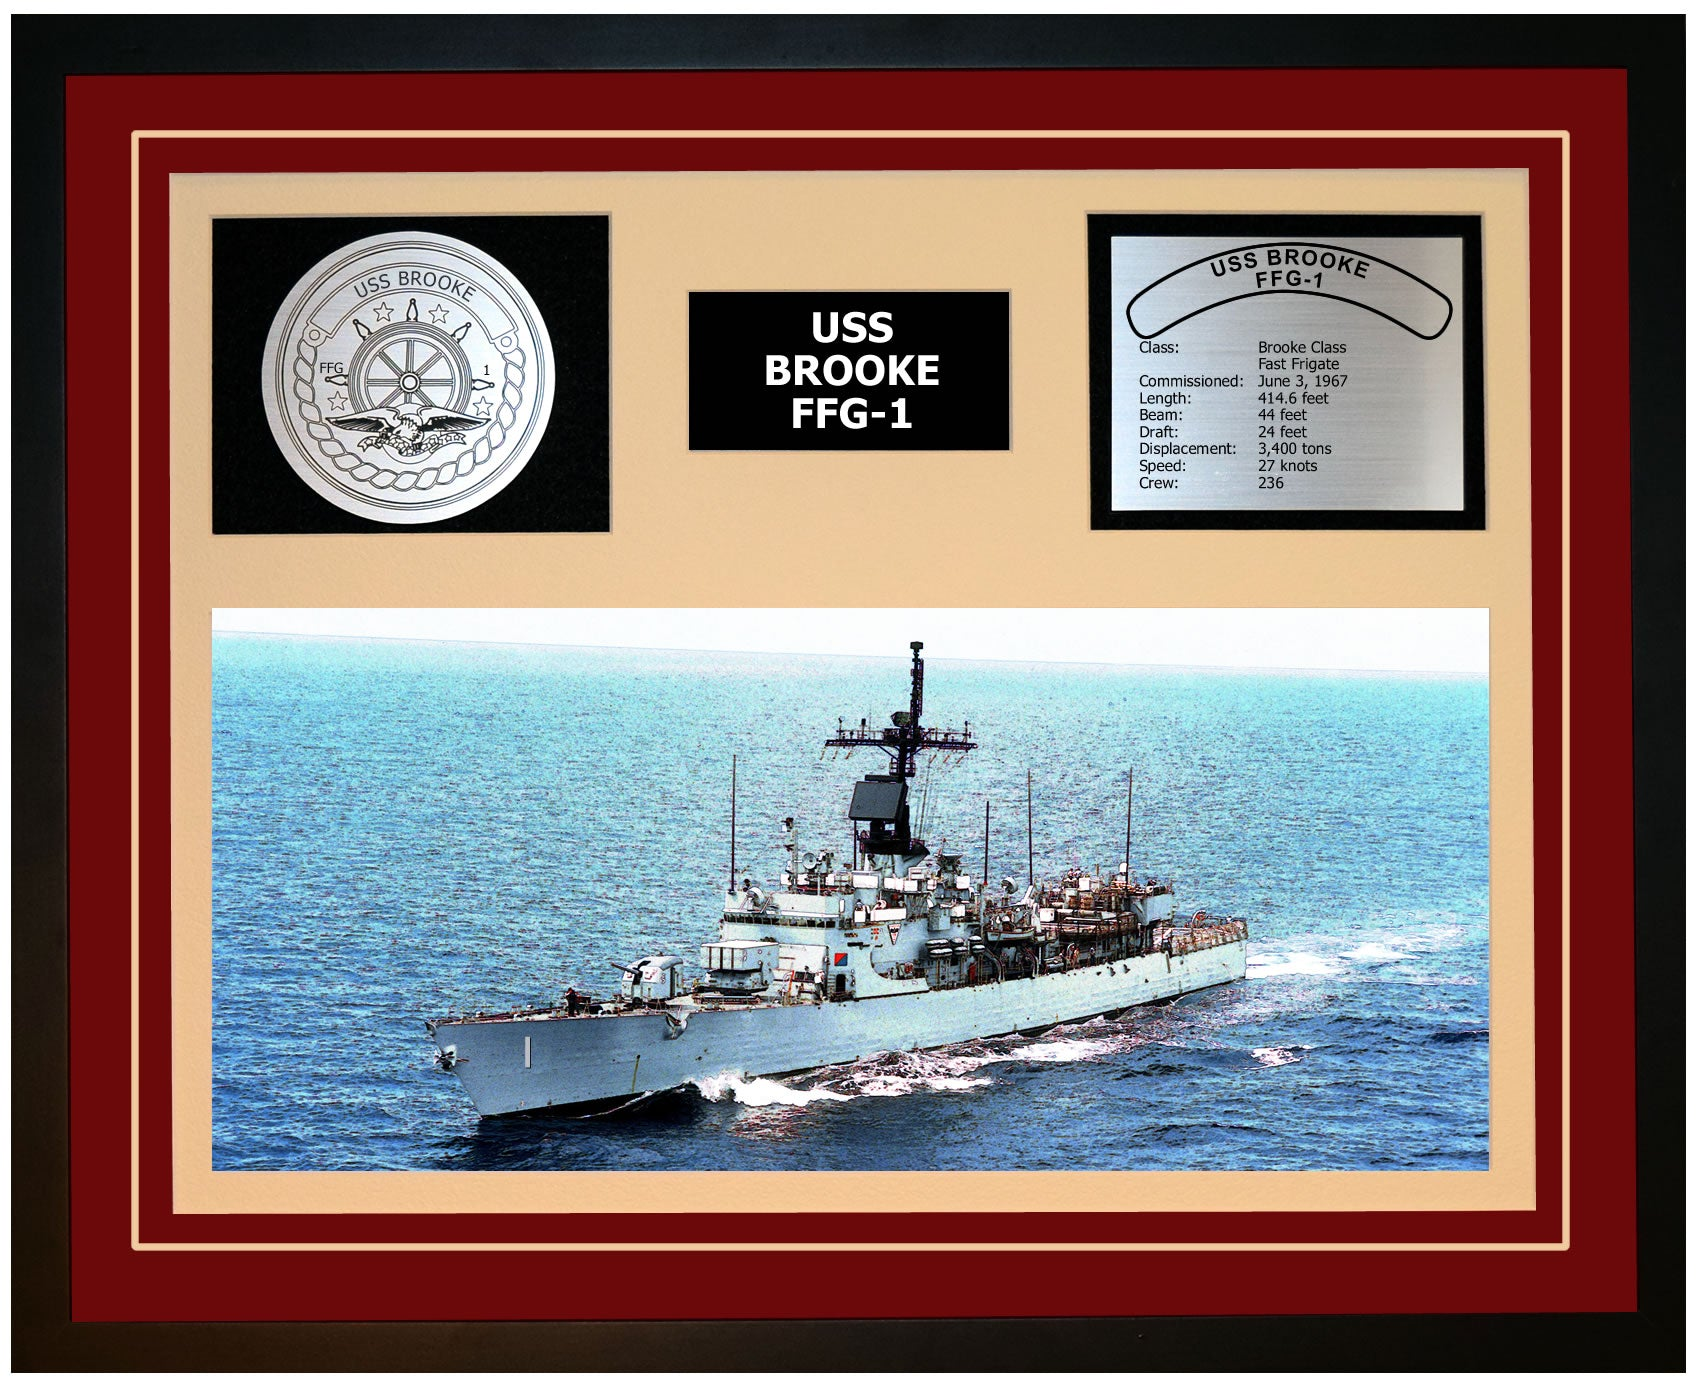 USS BROOKE FFG-1 Framed Navy Ship Display Burgundy